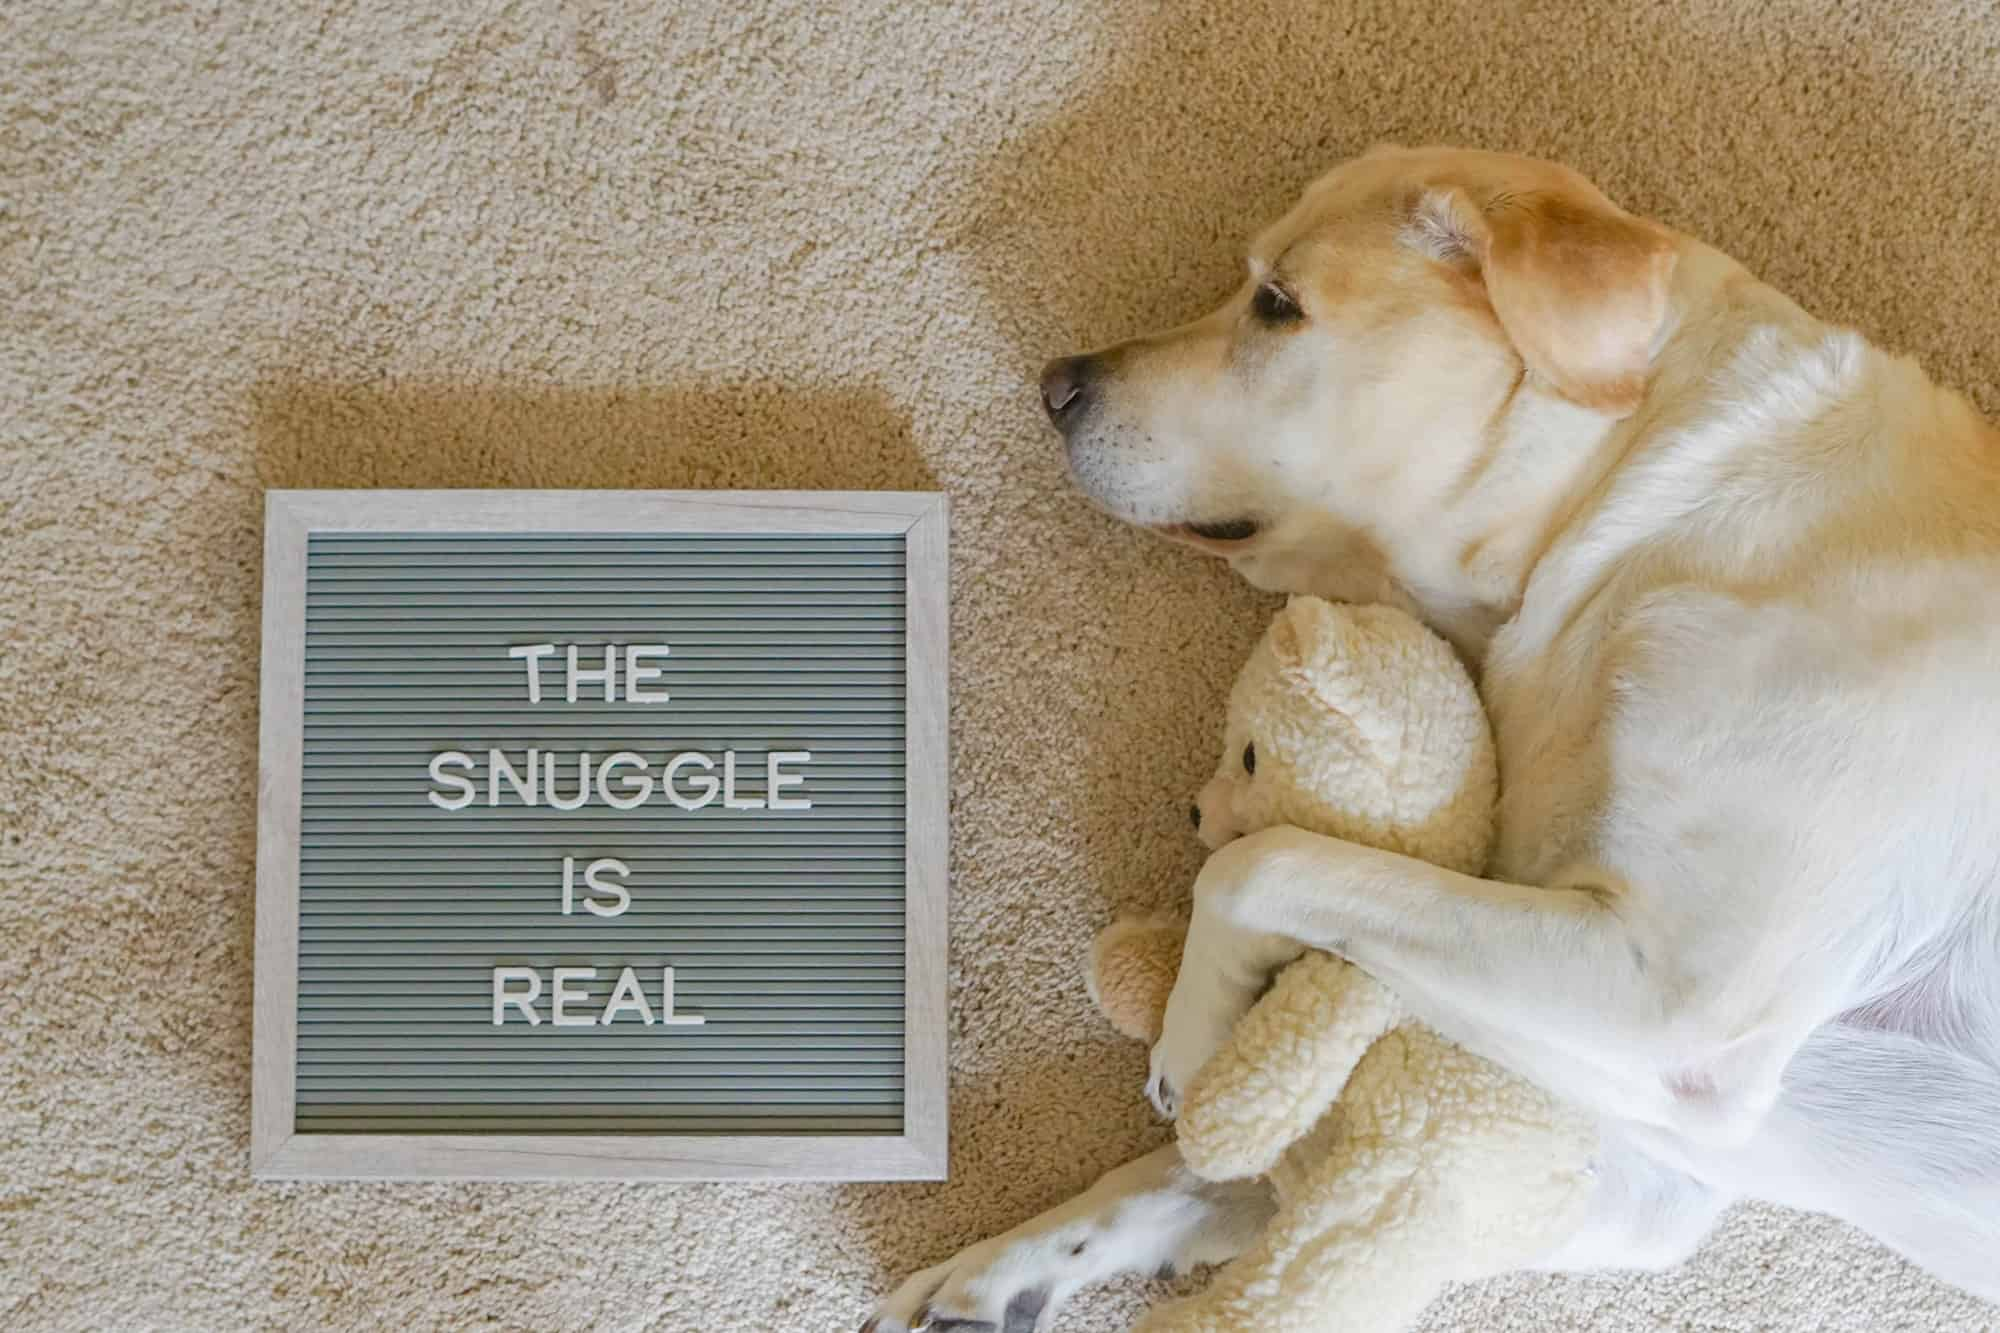 Dog snuggling with stuffed animal and message board saying the snuggle is real